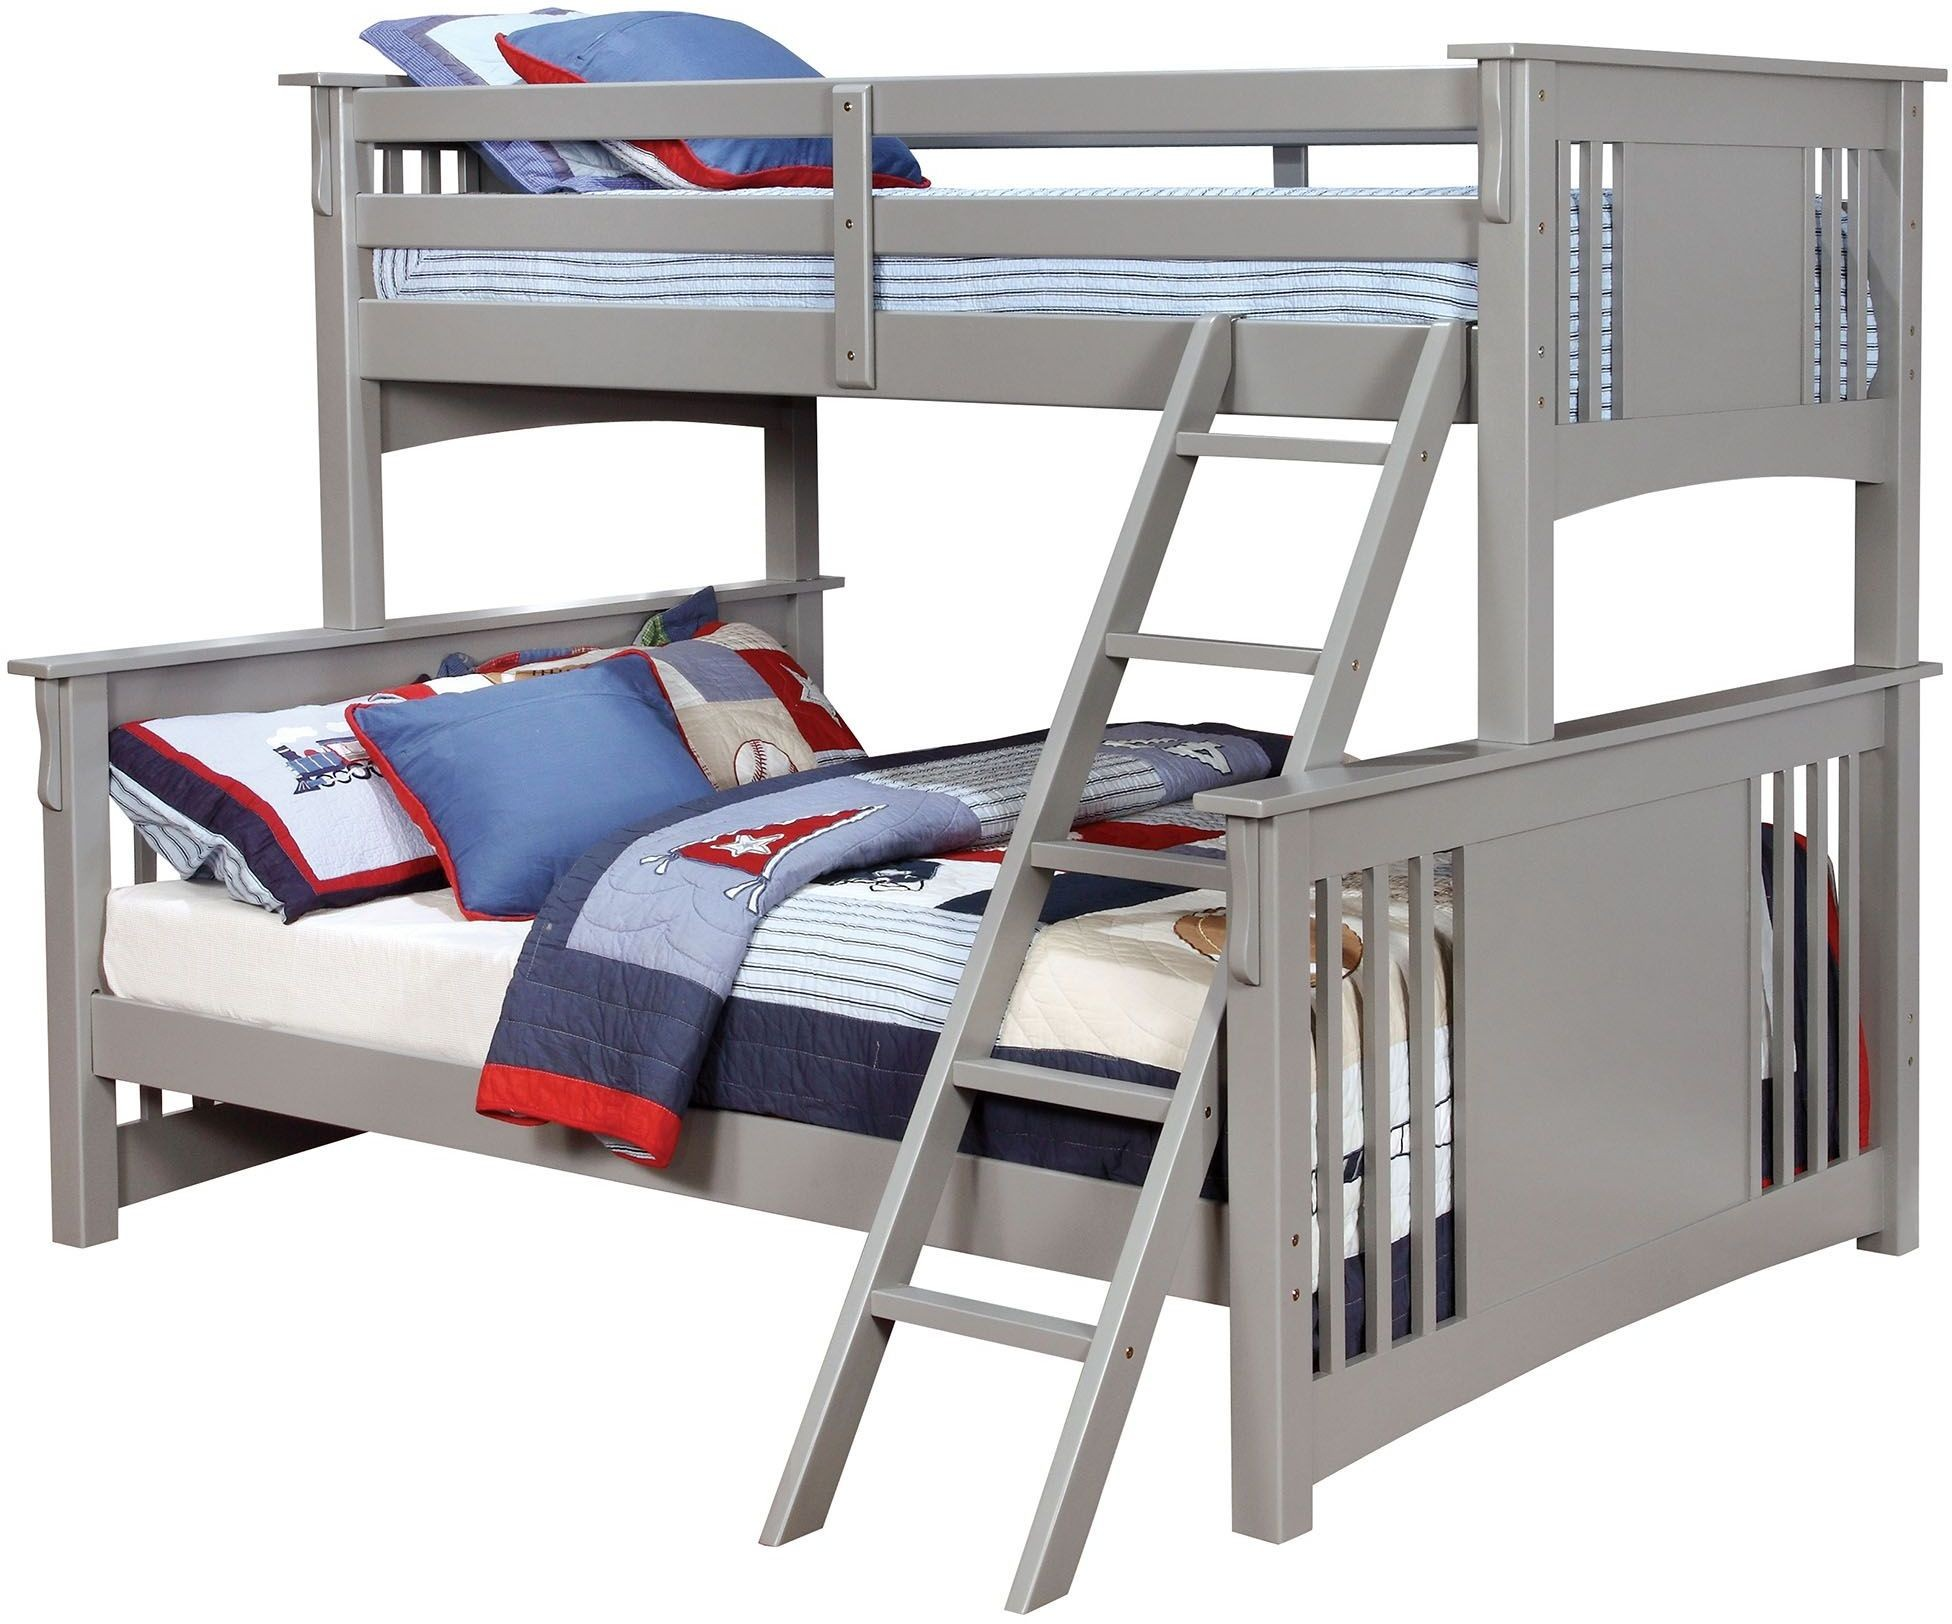 spring creek gray twin xl over queen bunk bed from furniture of america coleman furniture. Black Bedroom Furniture Sets. Home Design Ideas